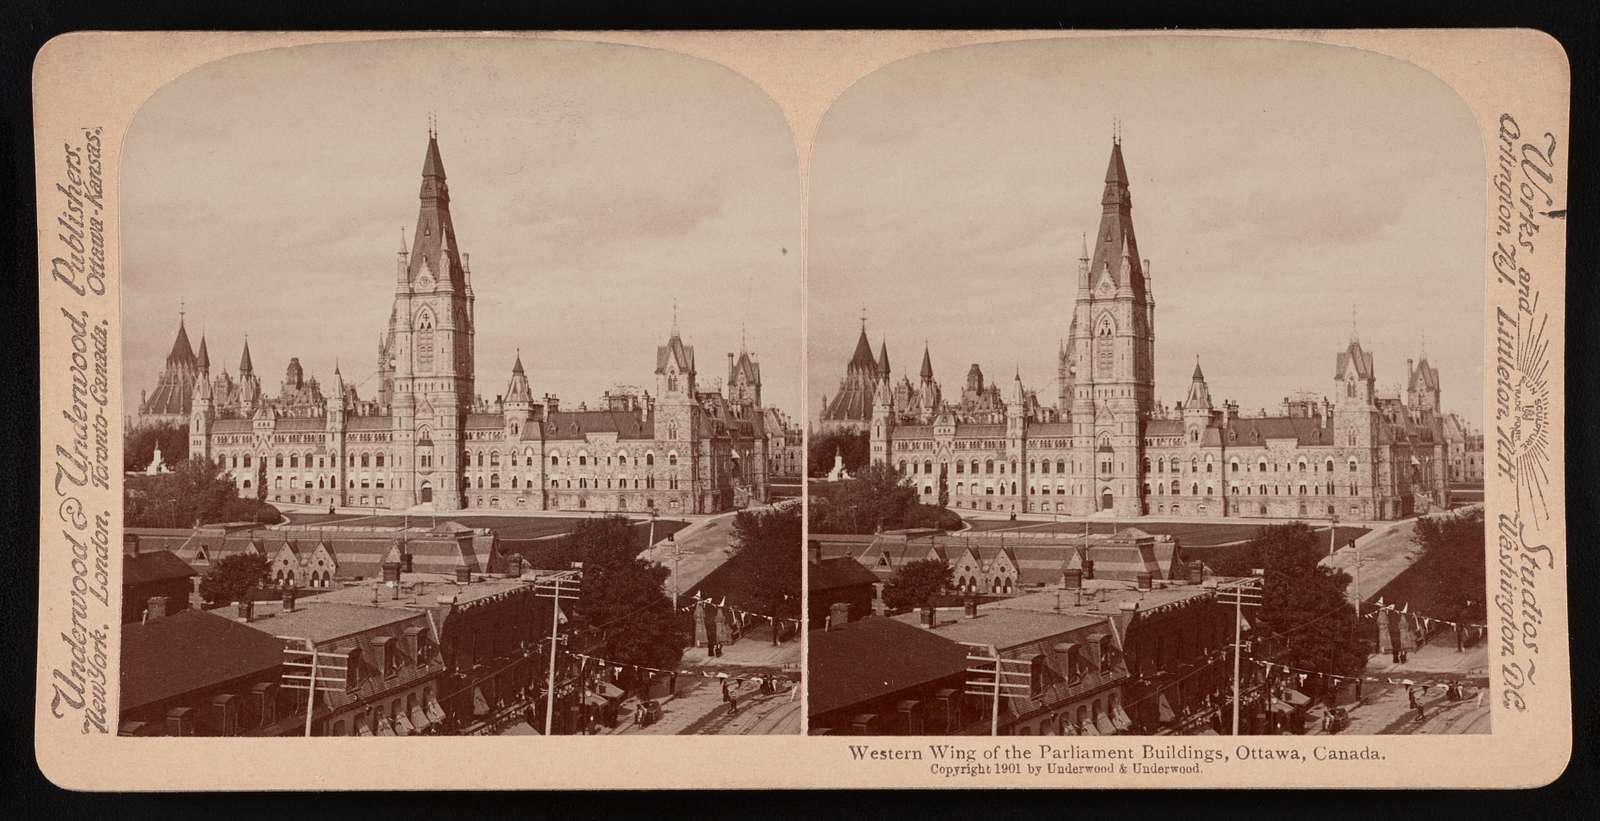 Western wing of the Parliament buildings, Ottawa, Canada